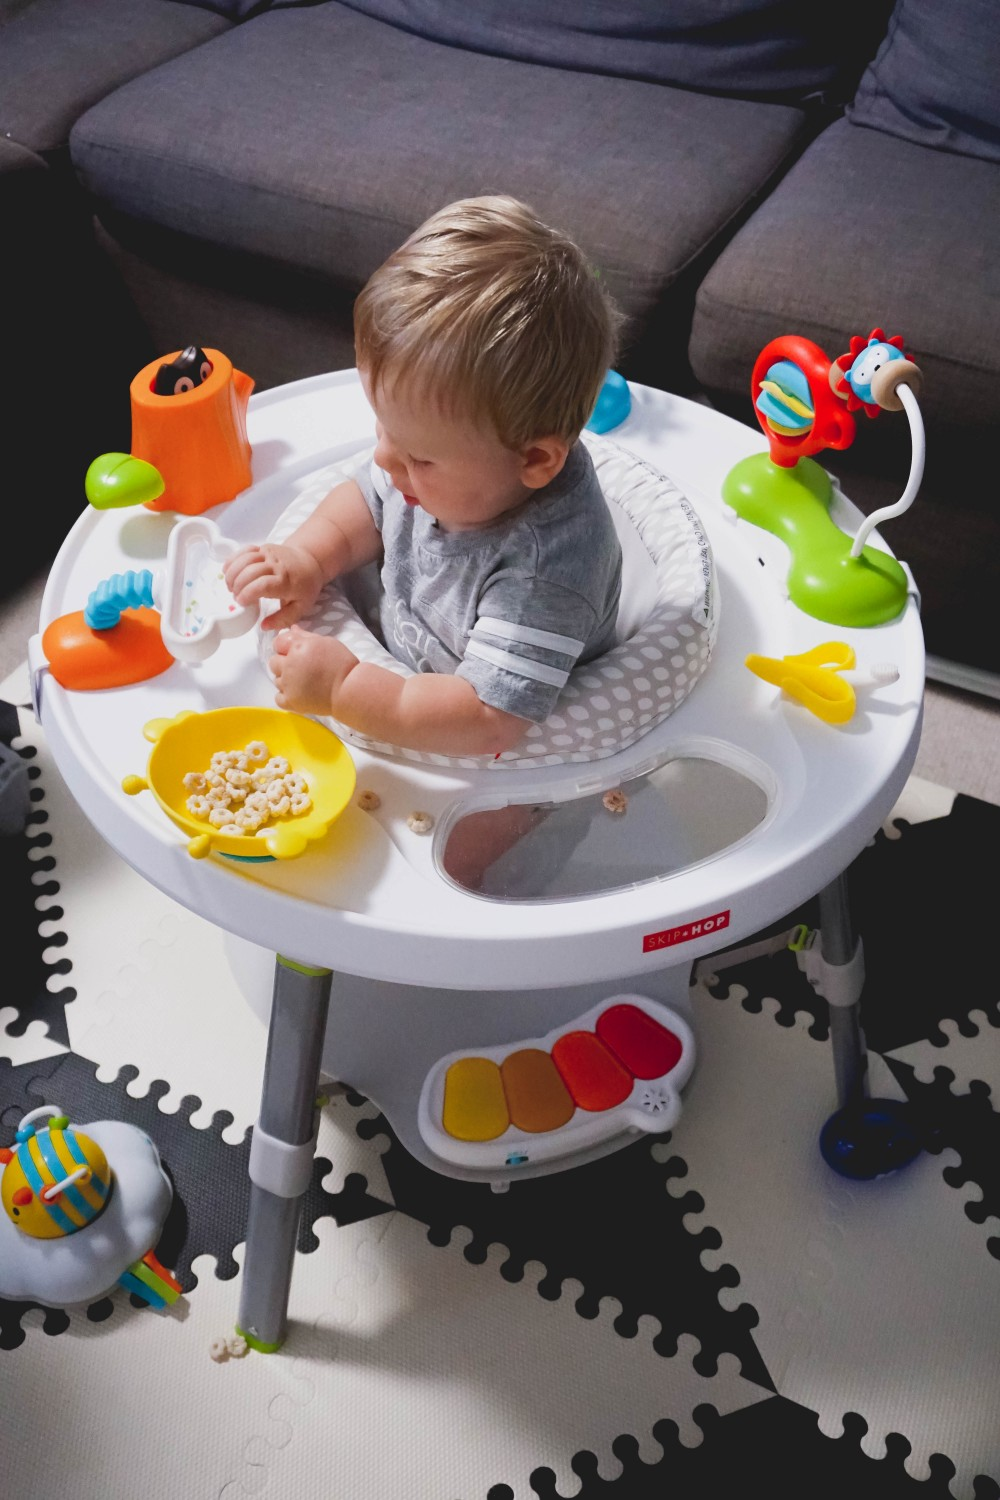 Playtime fun with Skip Hop-Skip Hop Floor Mats-Activity Gym-Mason's 10 Month Update-Motherhood-Have Need Want at Home 12